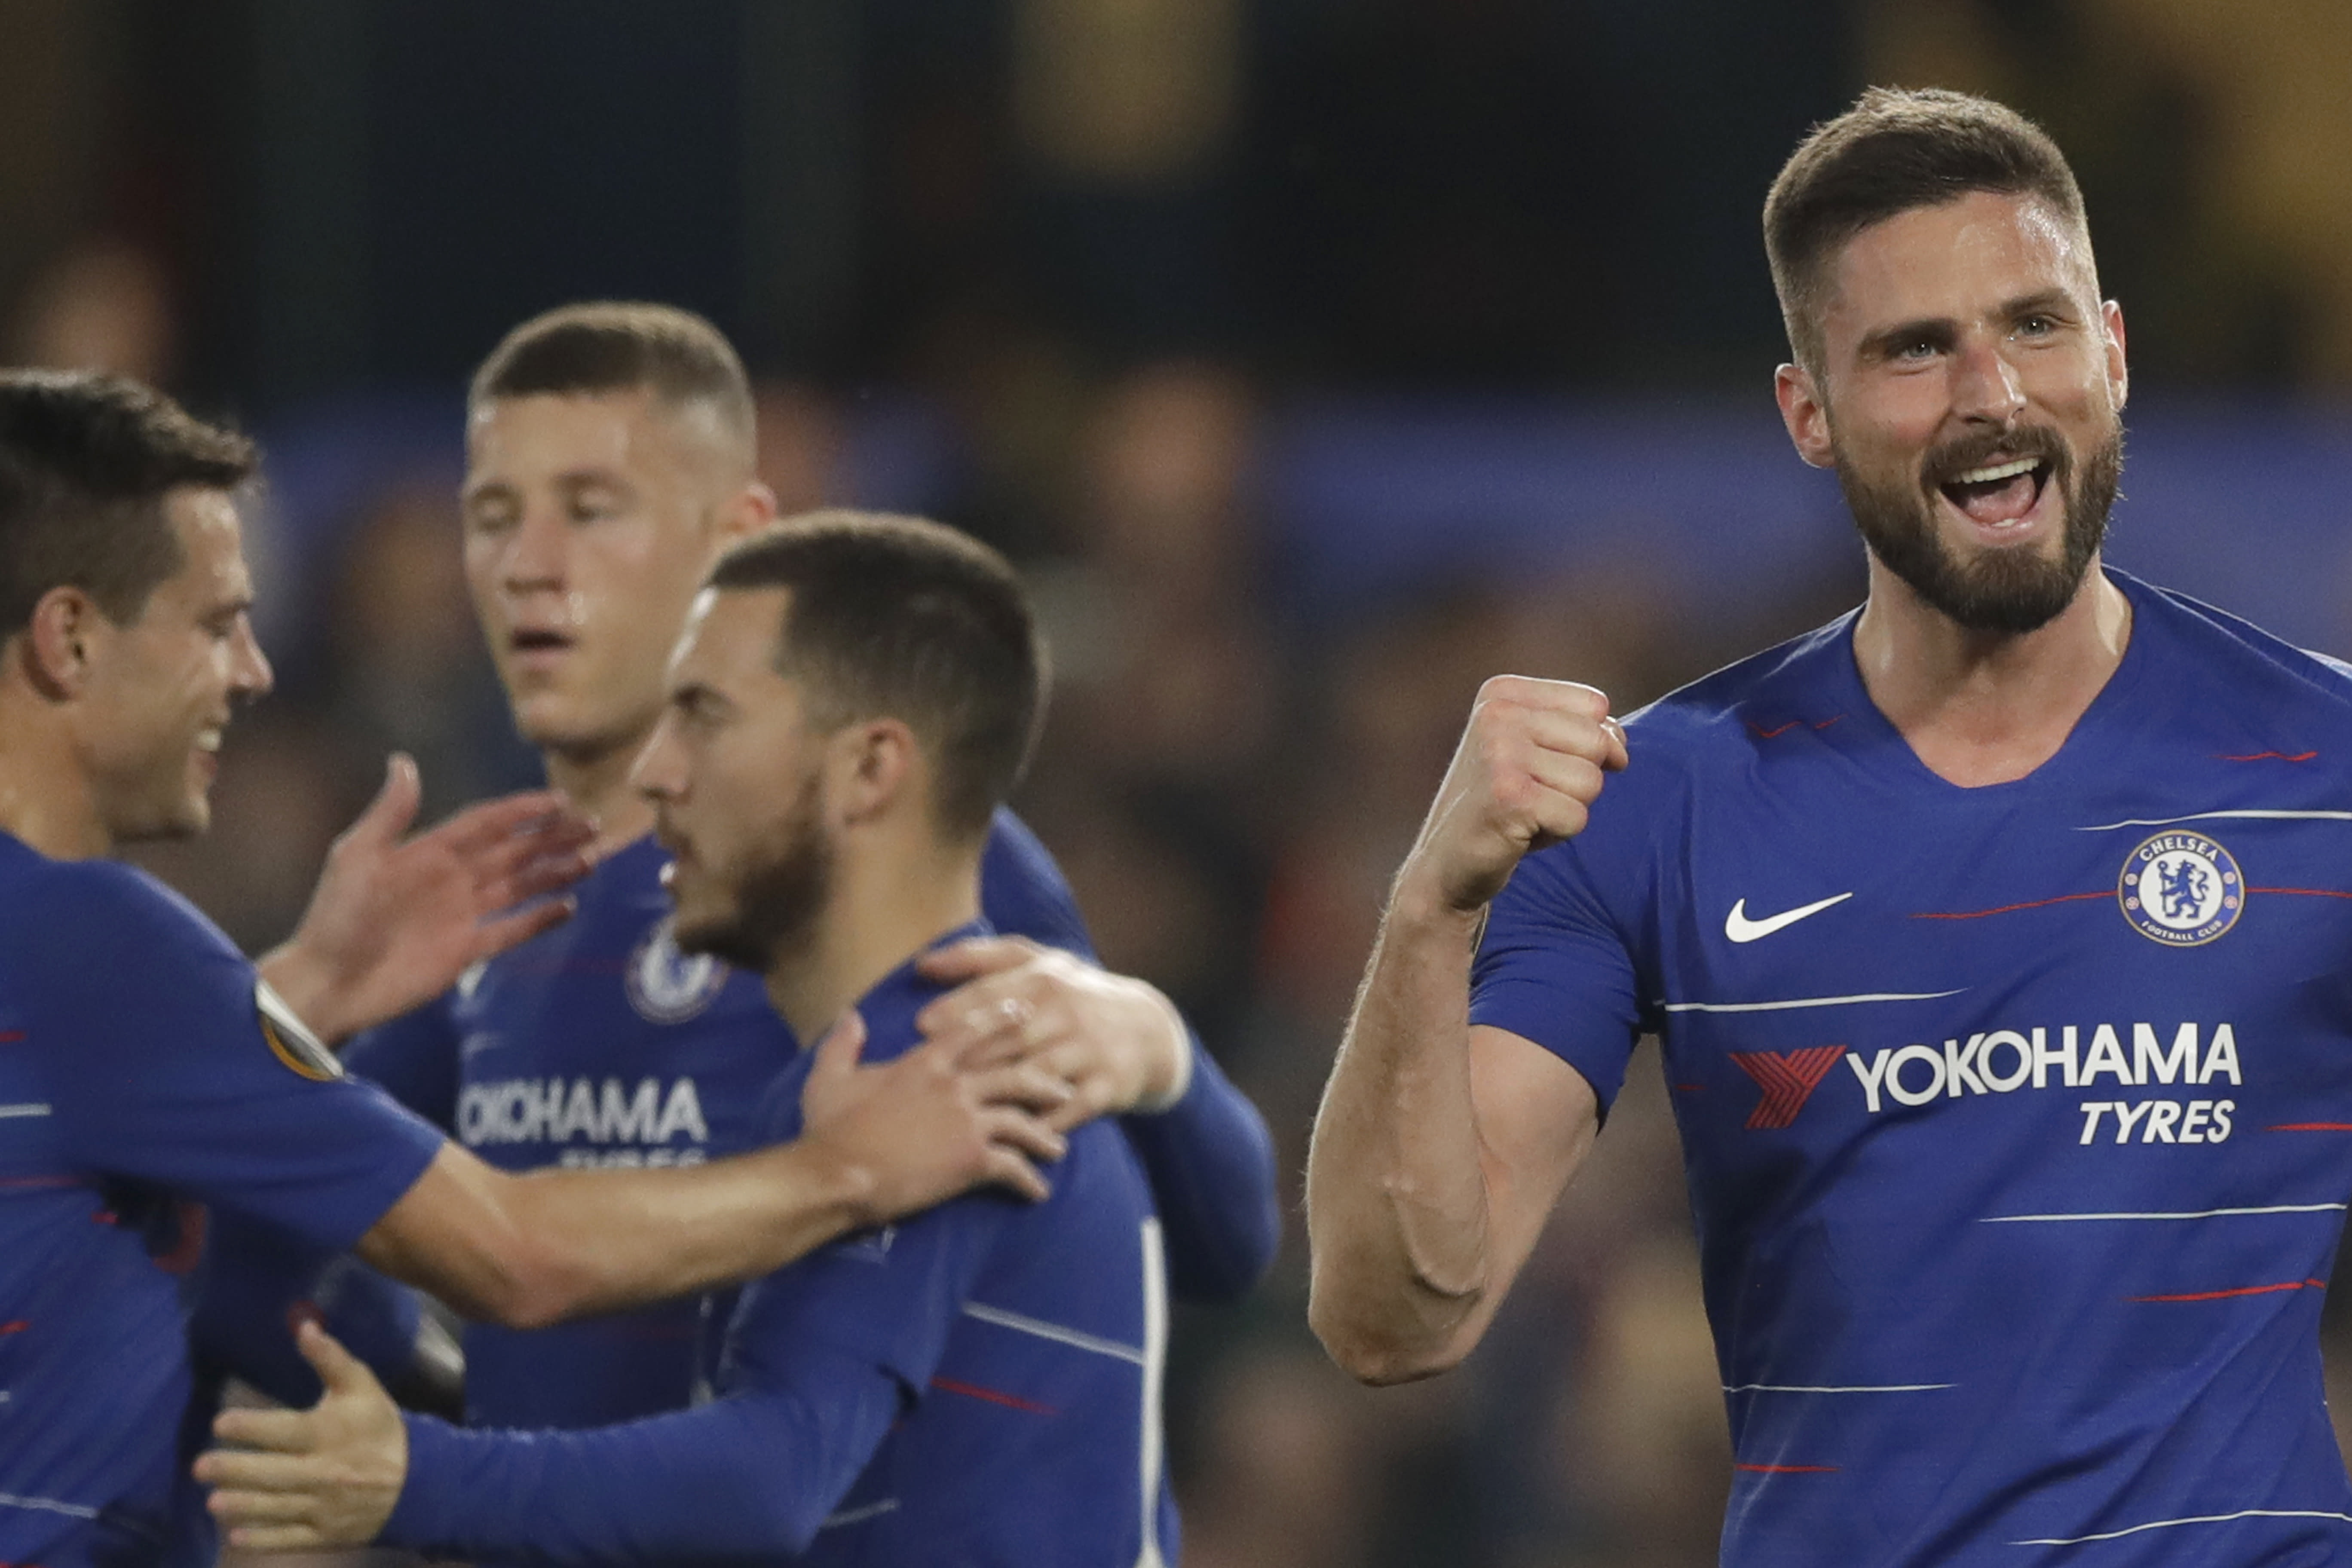 Chelsea's Olivier Giroud, the Europa League's top scorer, right, celebrates scoring his side's third goal during the Europa League quarterfinal, second leg, soccer match between Chelsea and Slavia Prague at Stamford Bridge stadium in London, Thursday, April 18, 2019. (AP Photo/Matt Dunham)